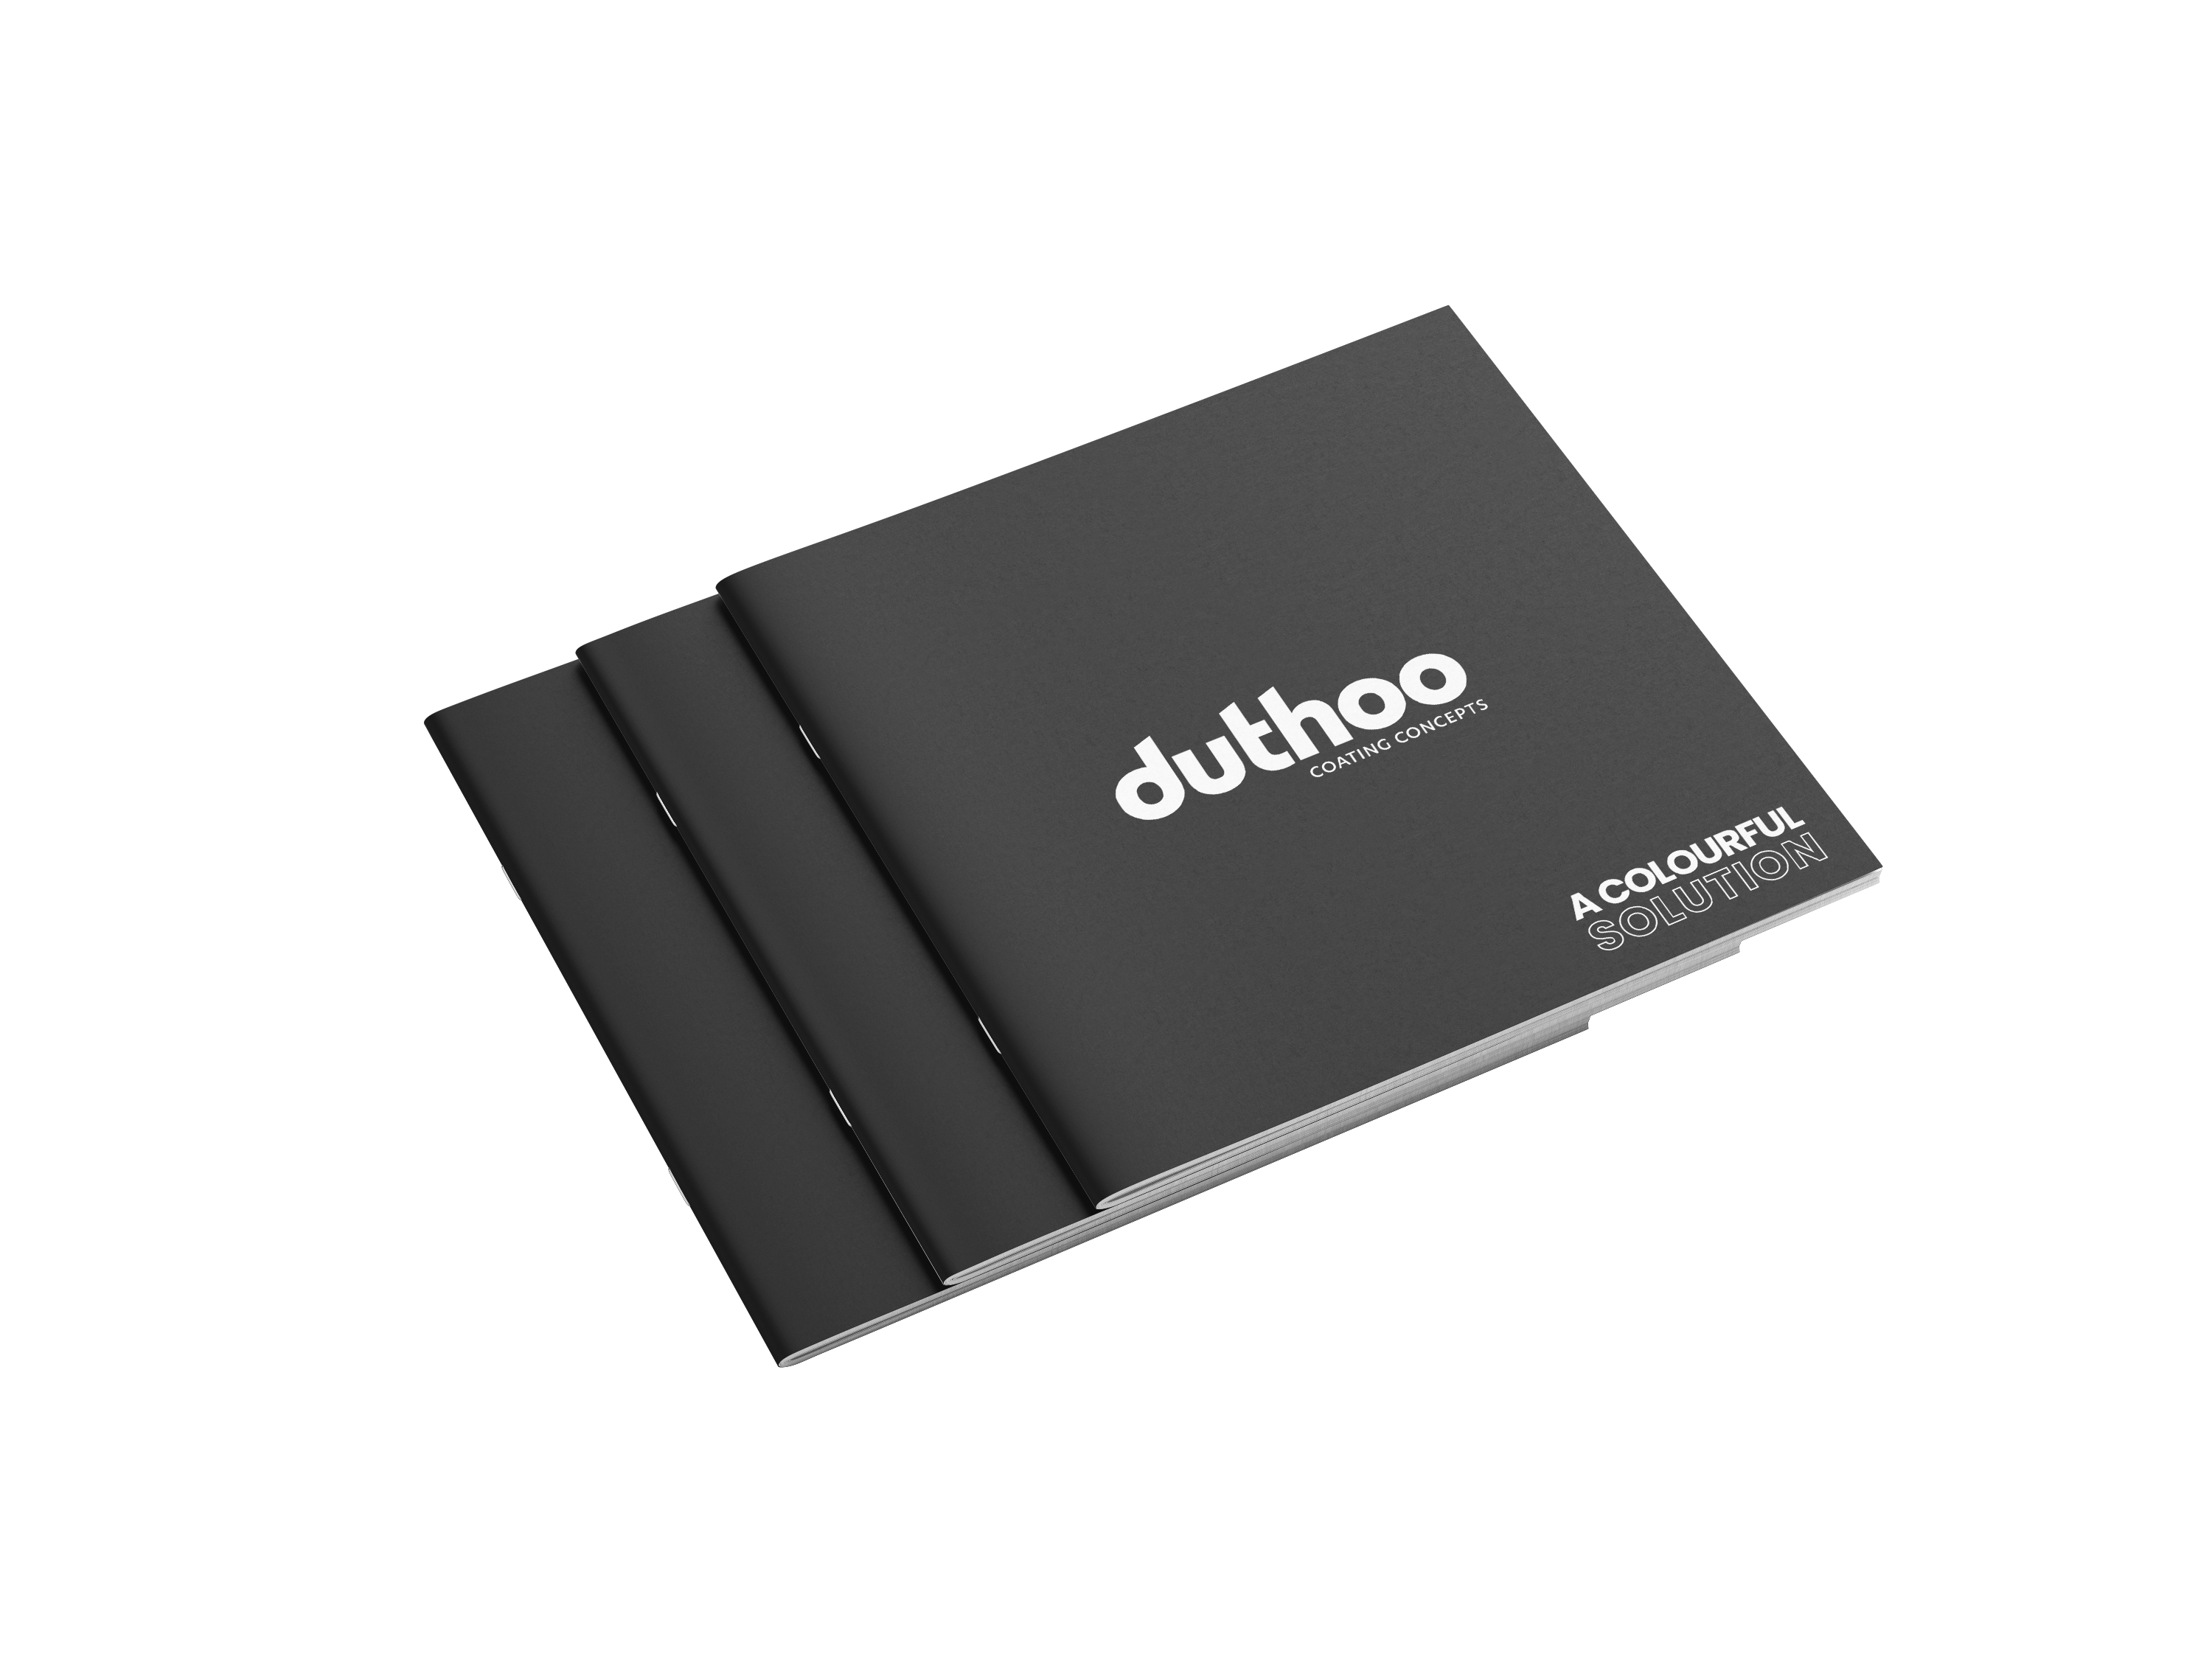 Corporate brochure Duthoo. Discover what Duthoo stands for and which products you can find at our company